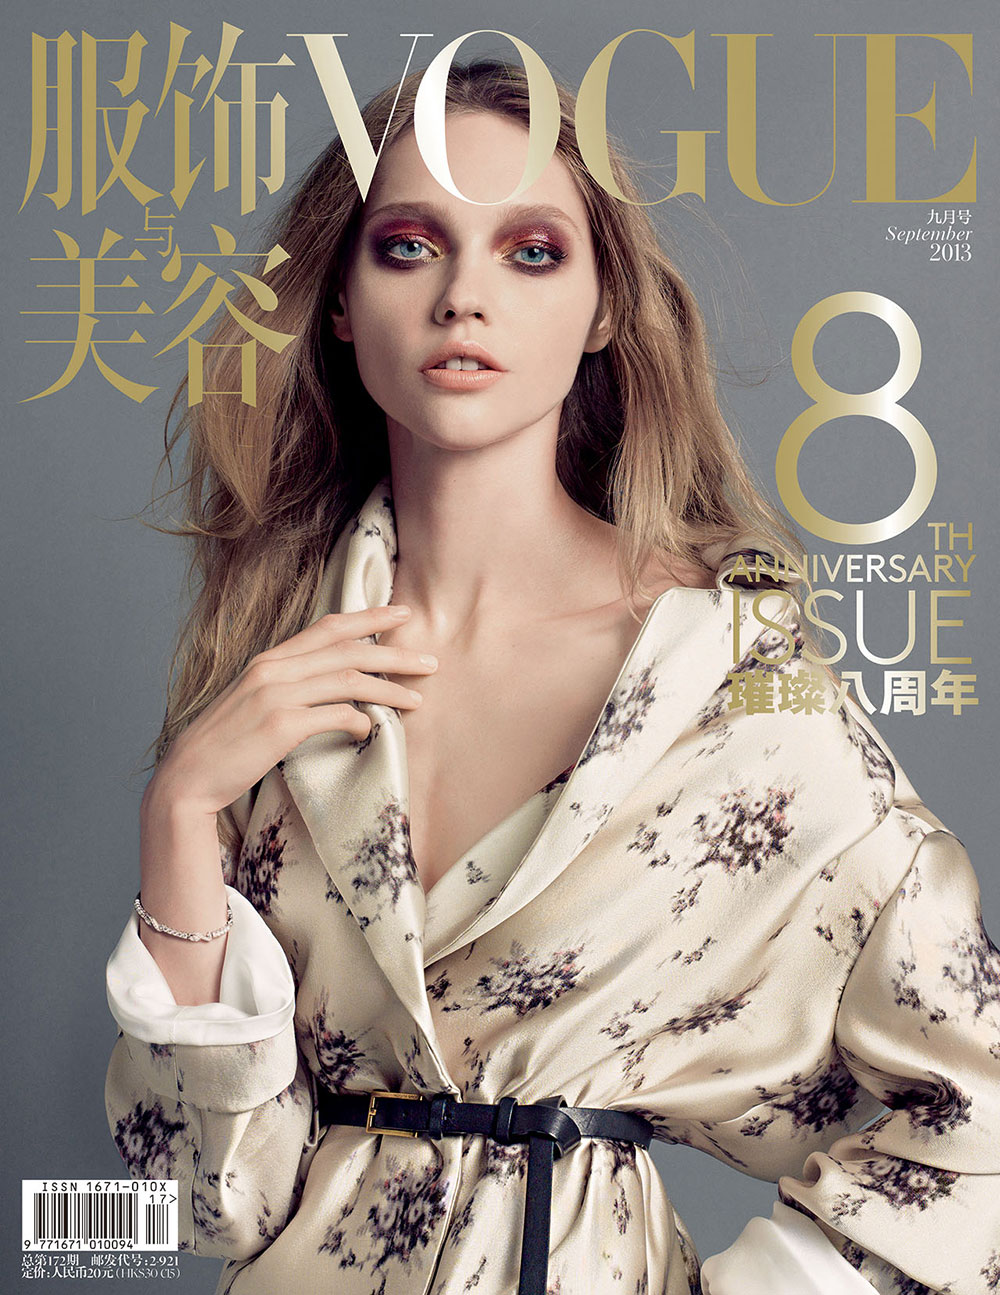 Pivovarova sasha covers paris vogue october photo